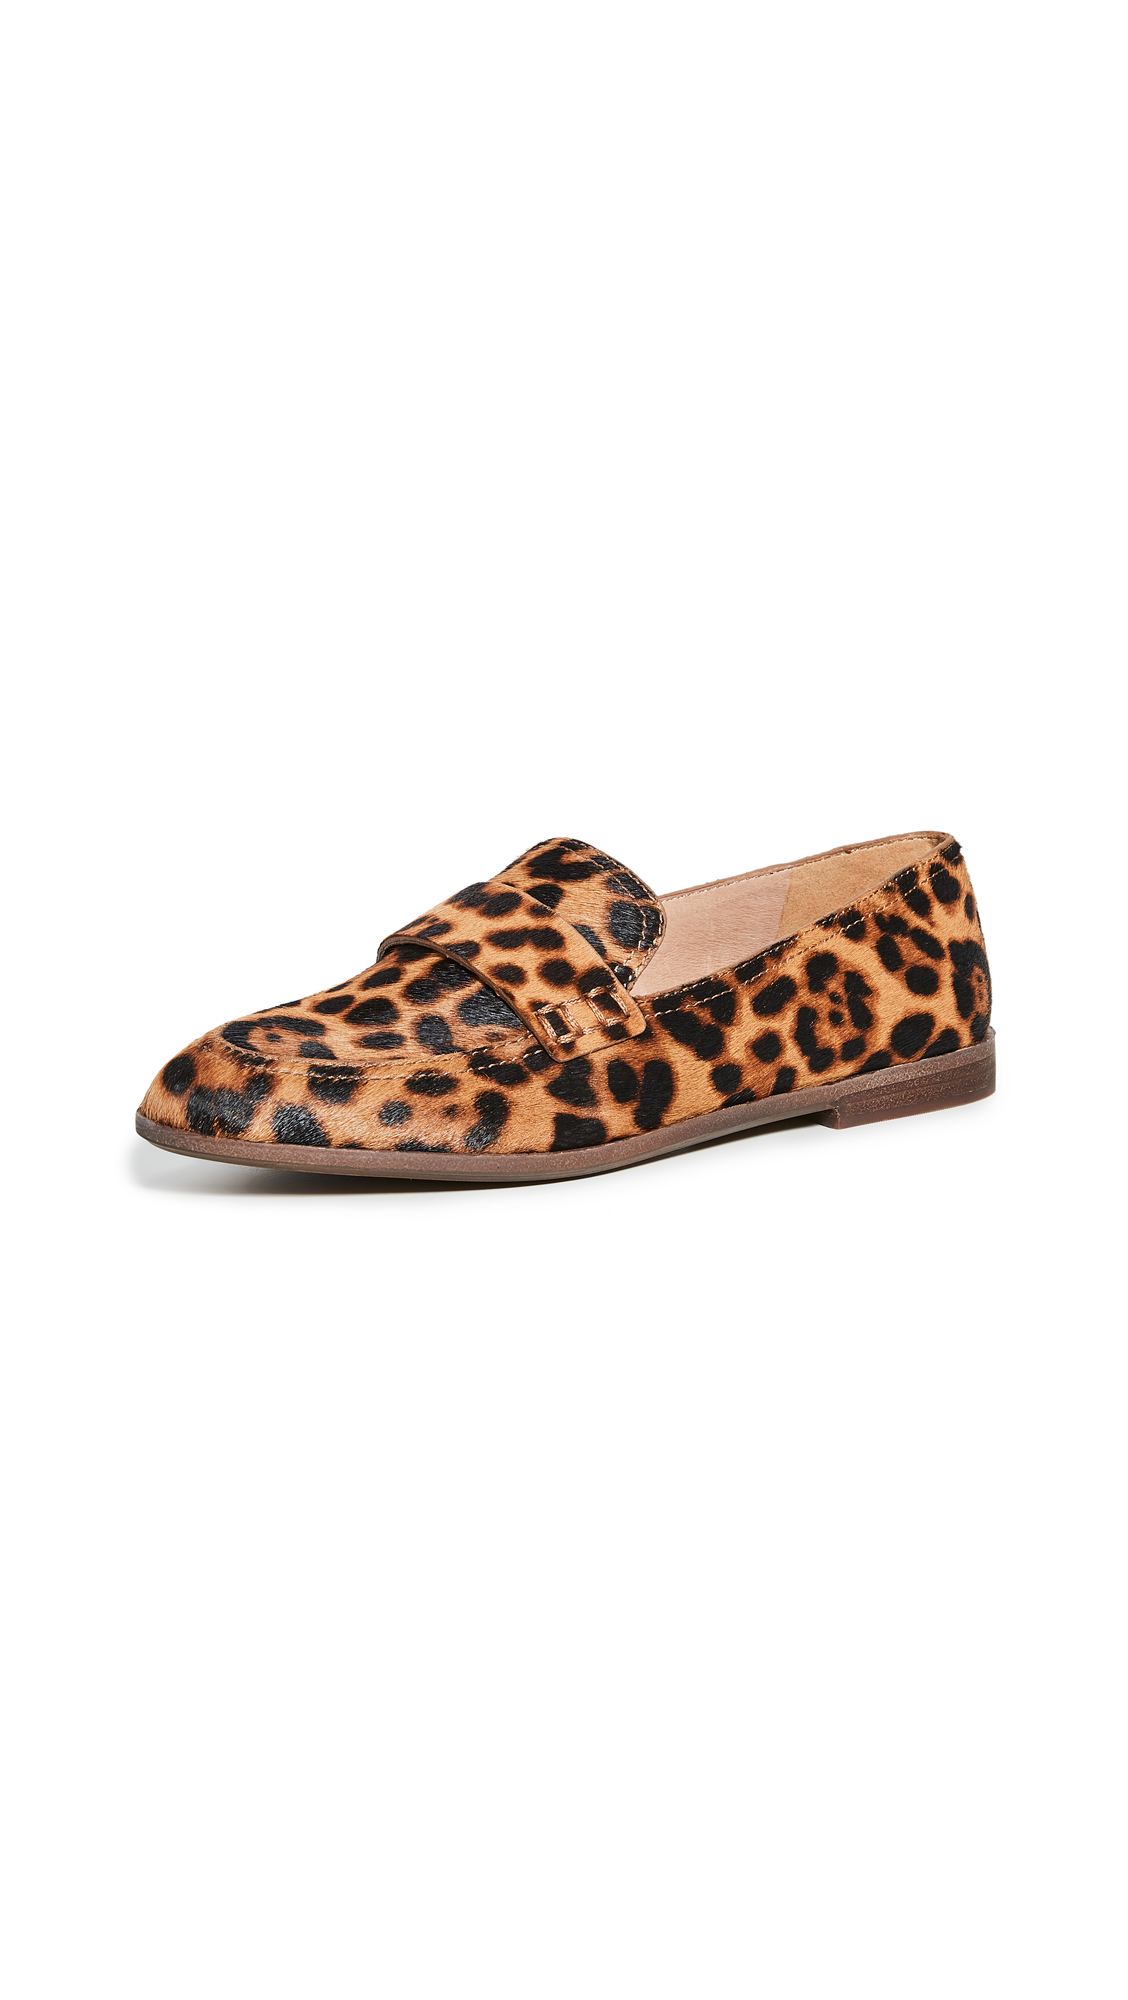 Buy Madewell Alex Loafers online, shop Madewell